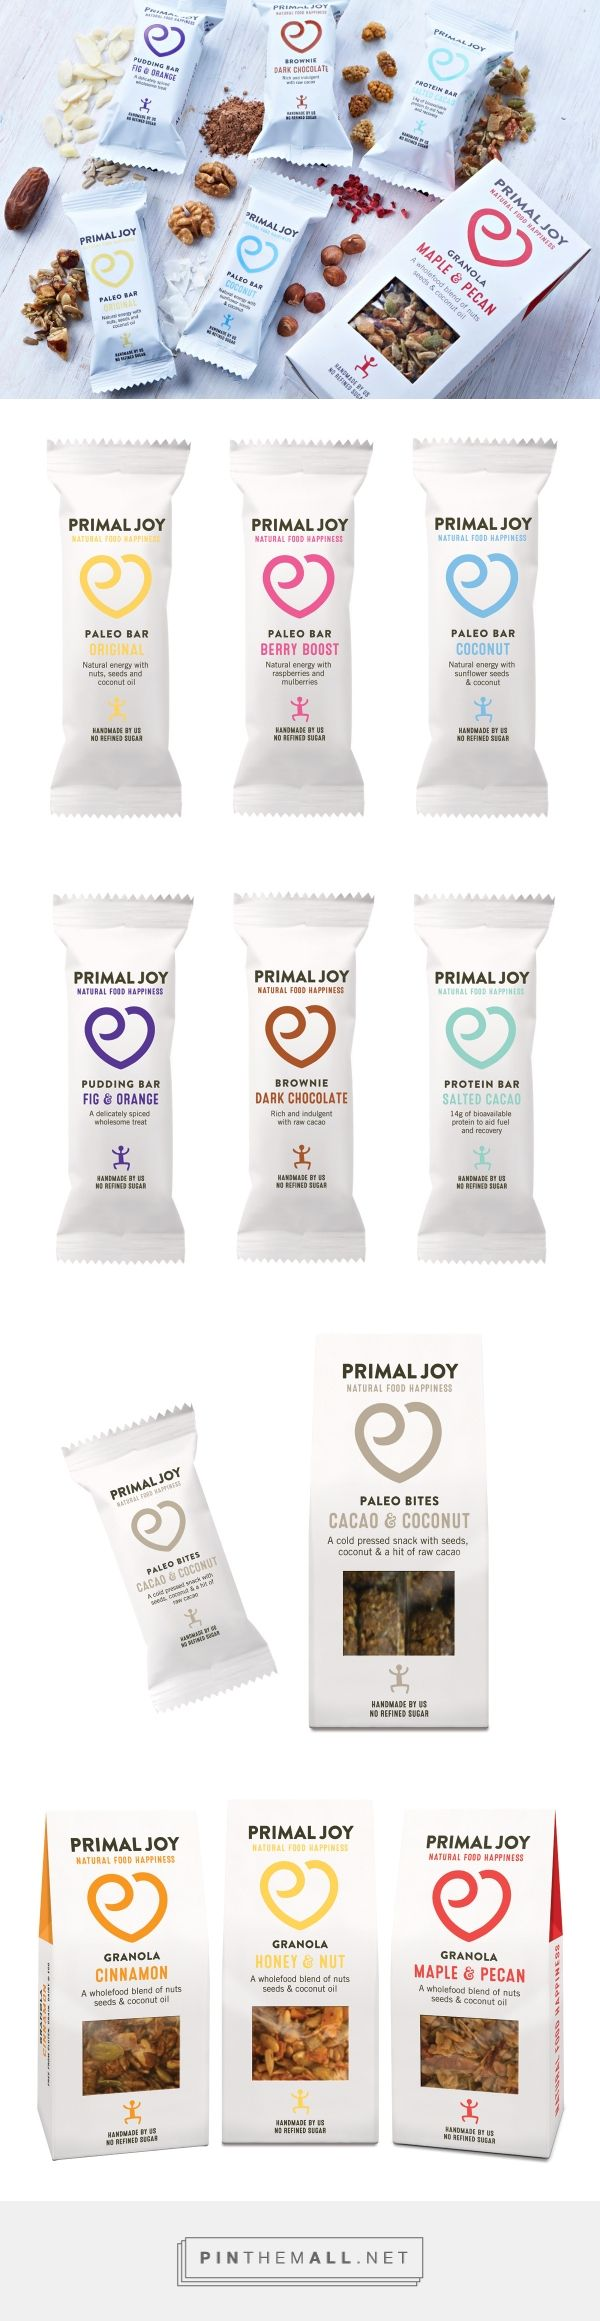 Primal Joy - Packaging of the World - Creative Package Design Gallery - http://www.packagingoftheworld.com/2017/01/primal-joy.html